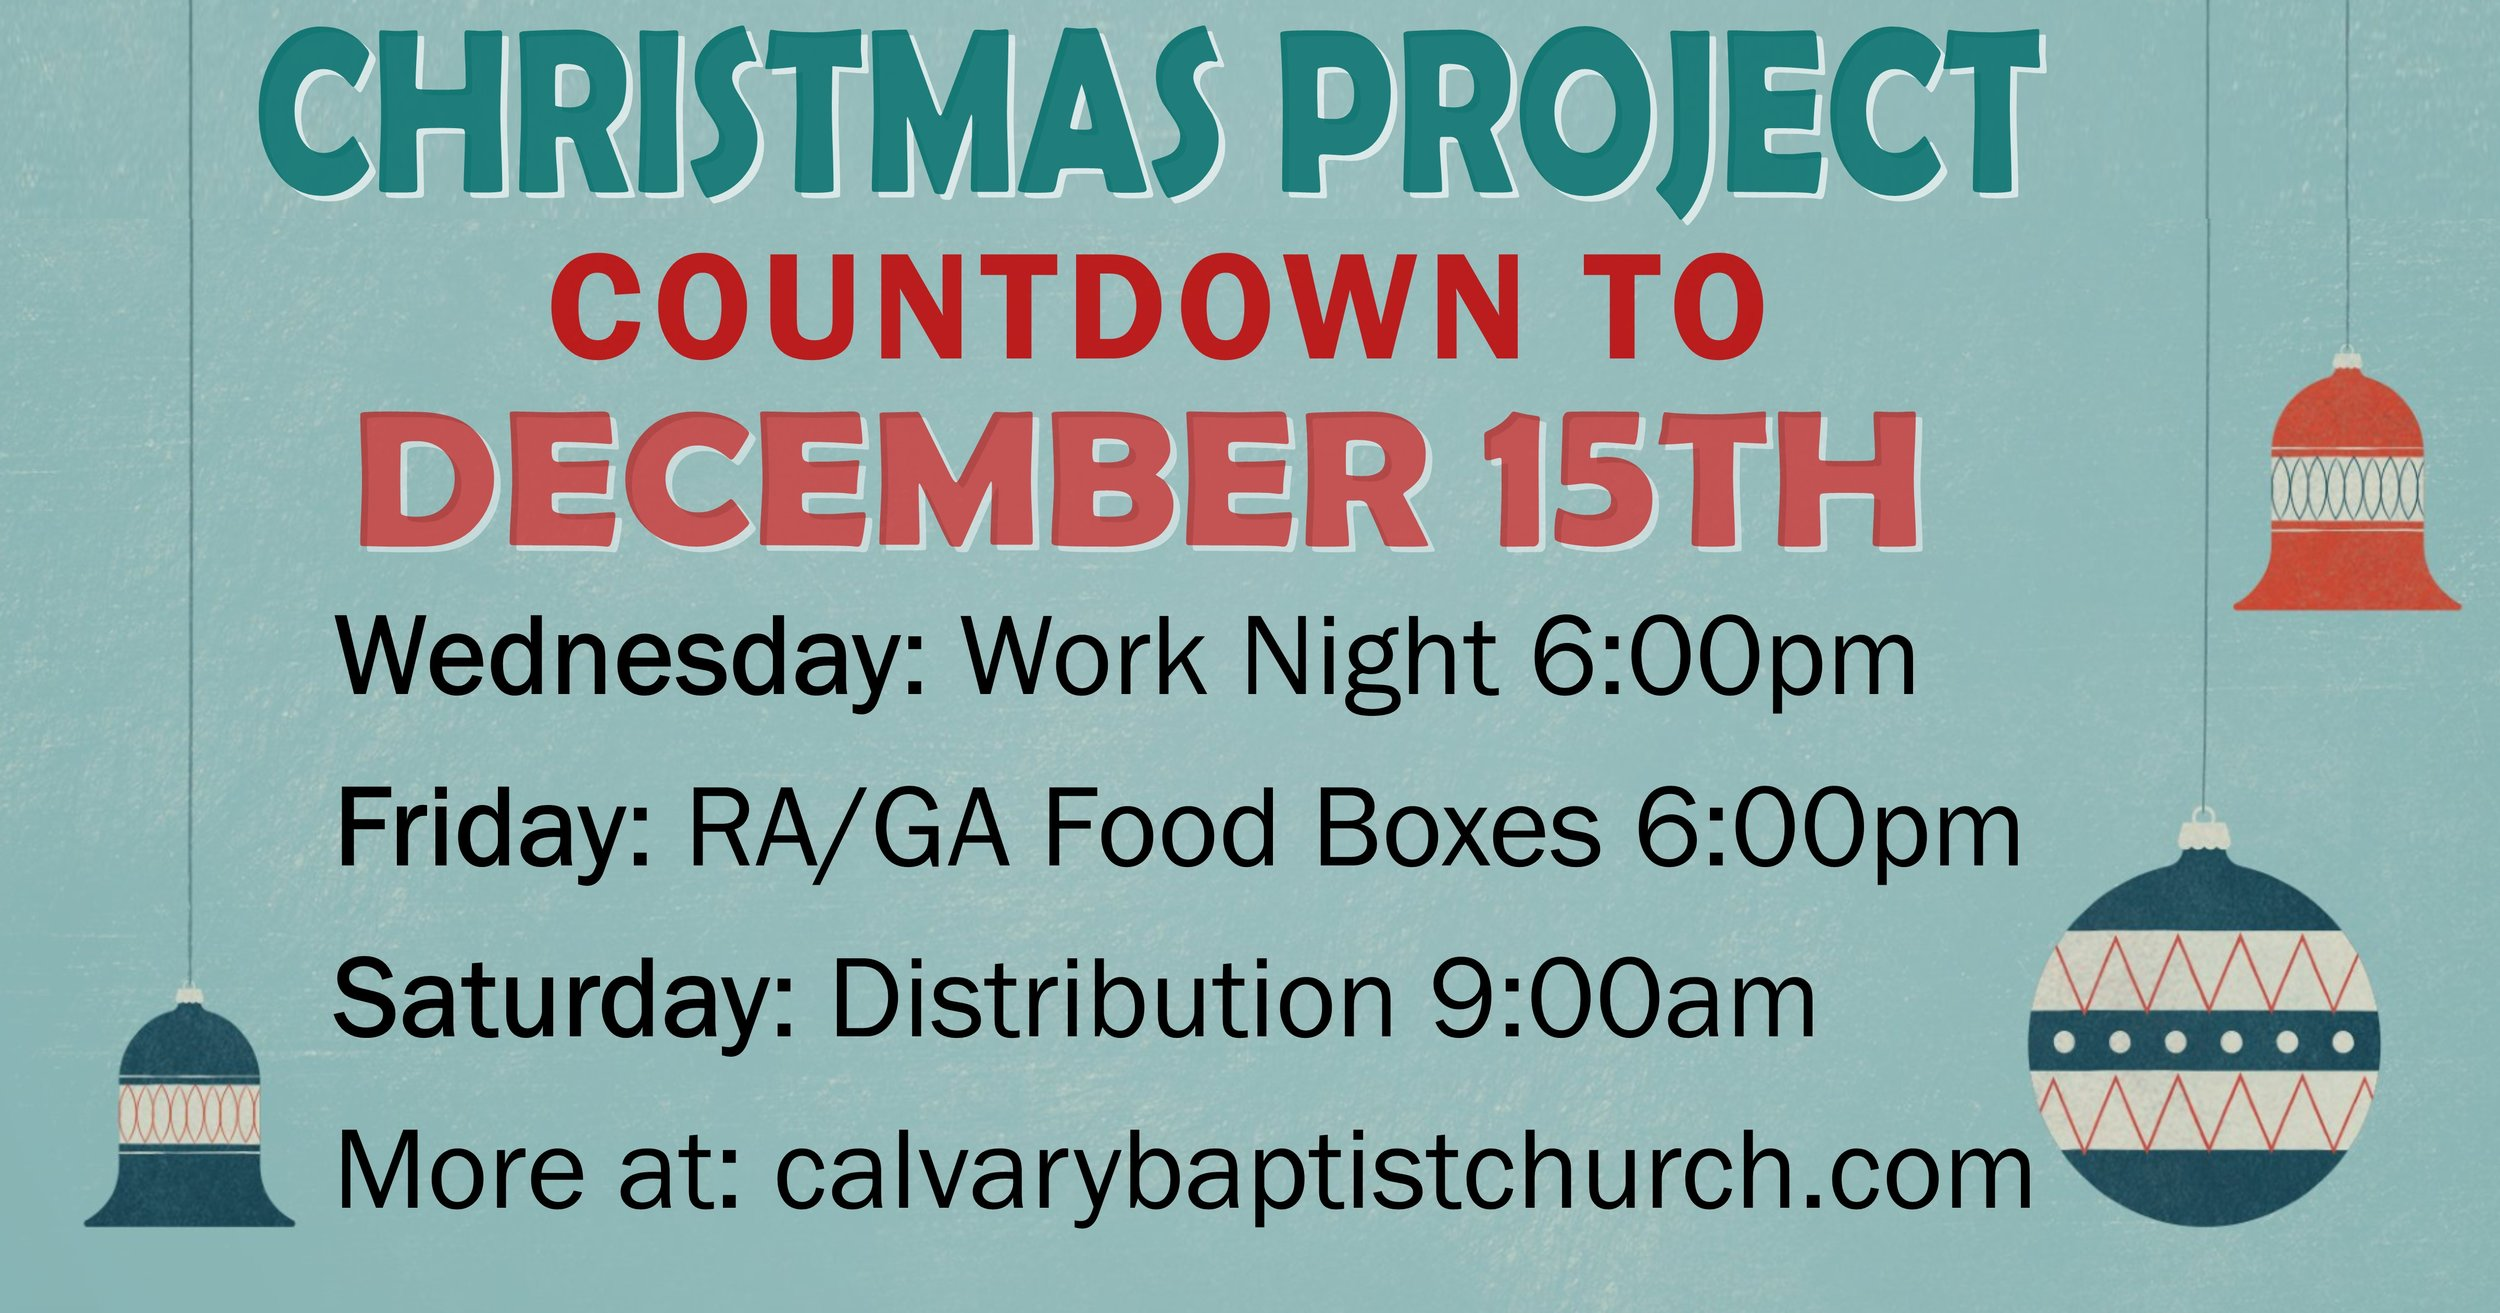 Christmas Project facebook 120618.jpg